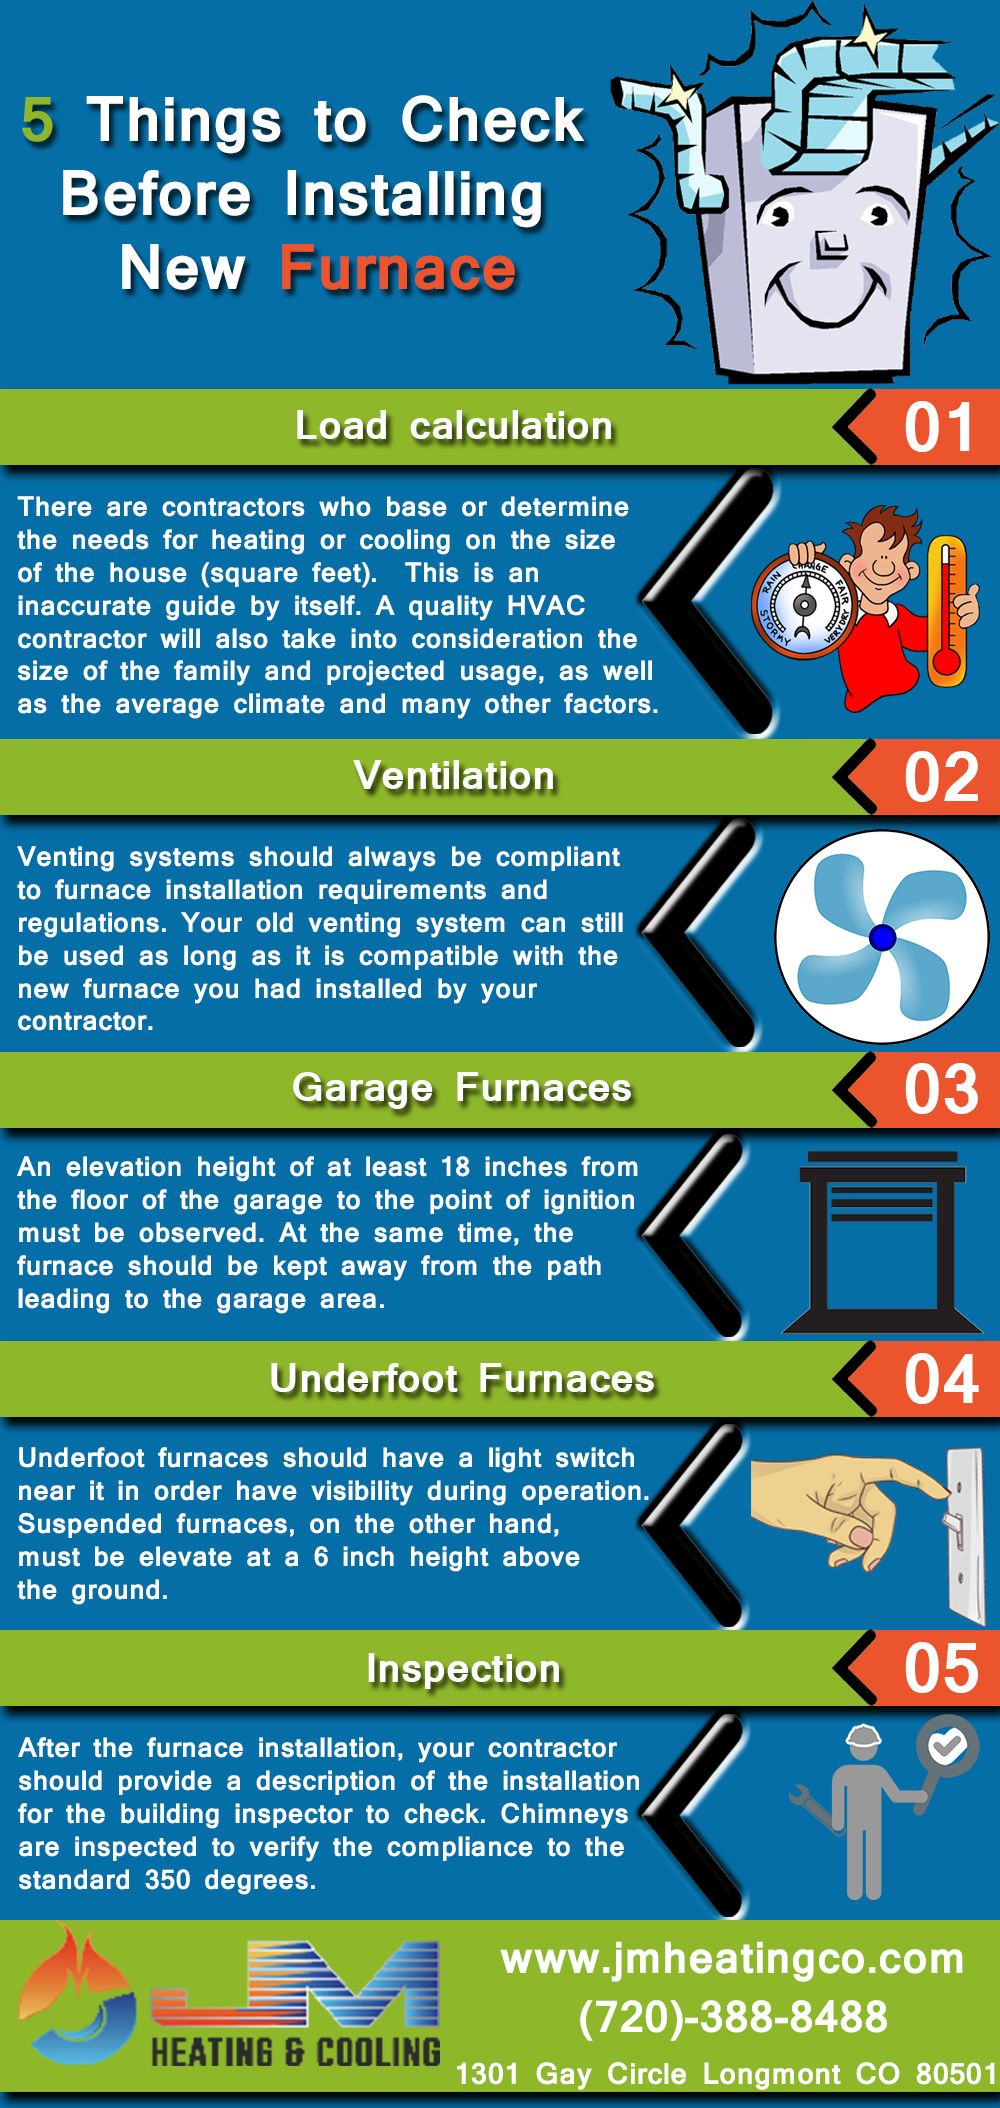 5 Things to Check Before Installing New Furnace Air